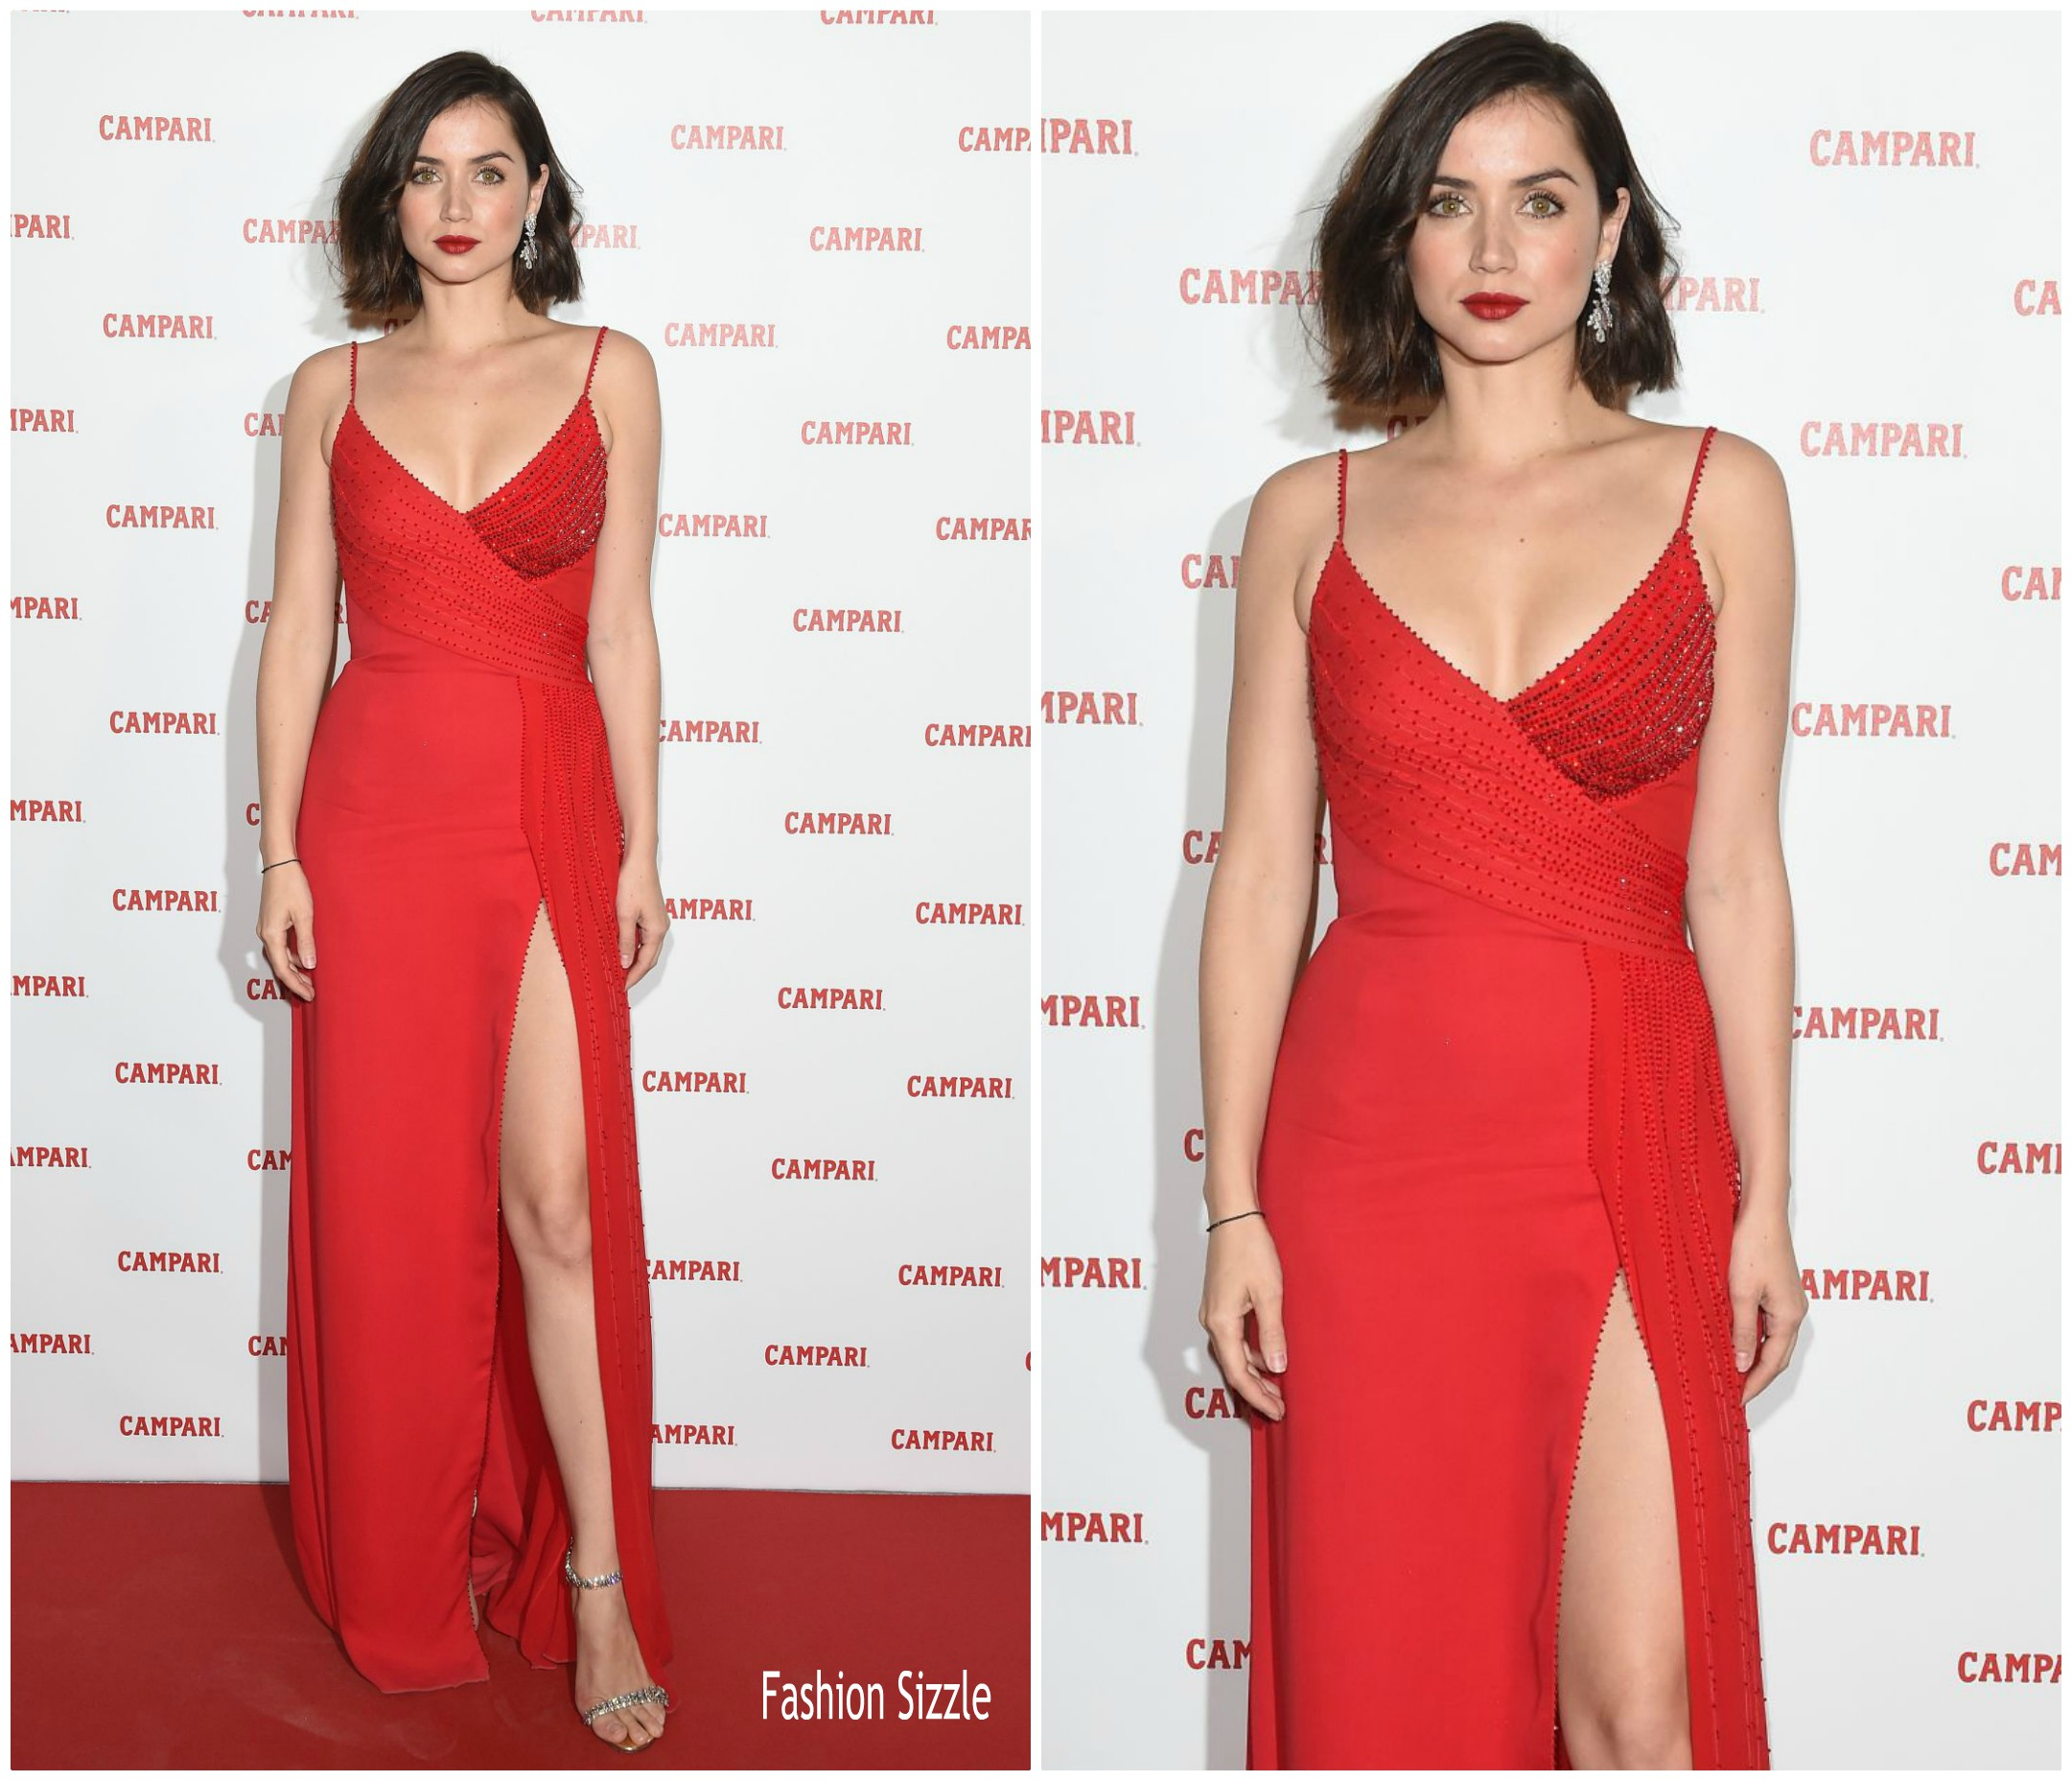 ana-de-armas-in-versace-campari-red-diaries-2019-premiere-event